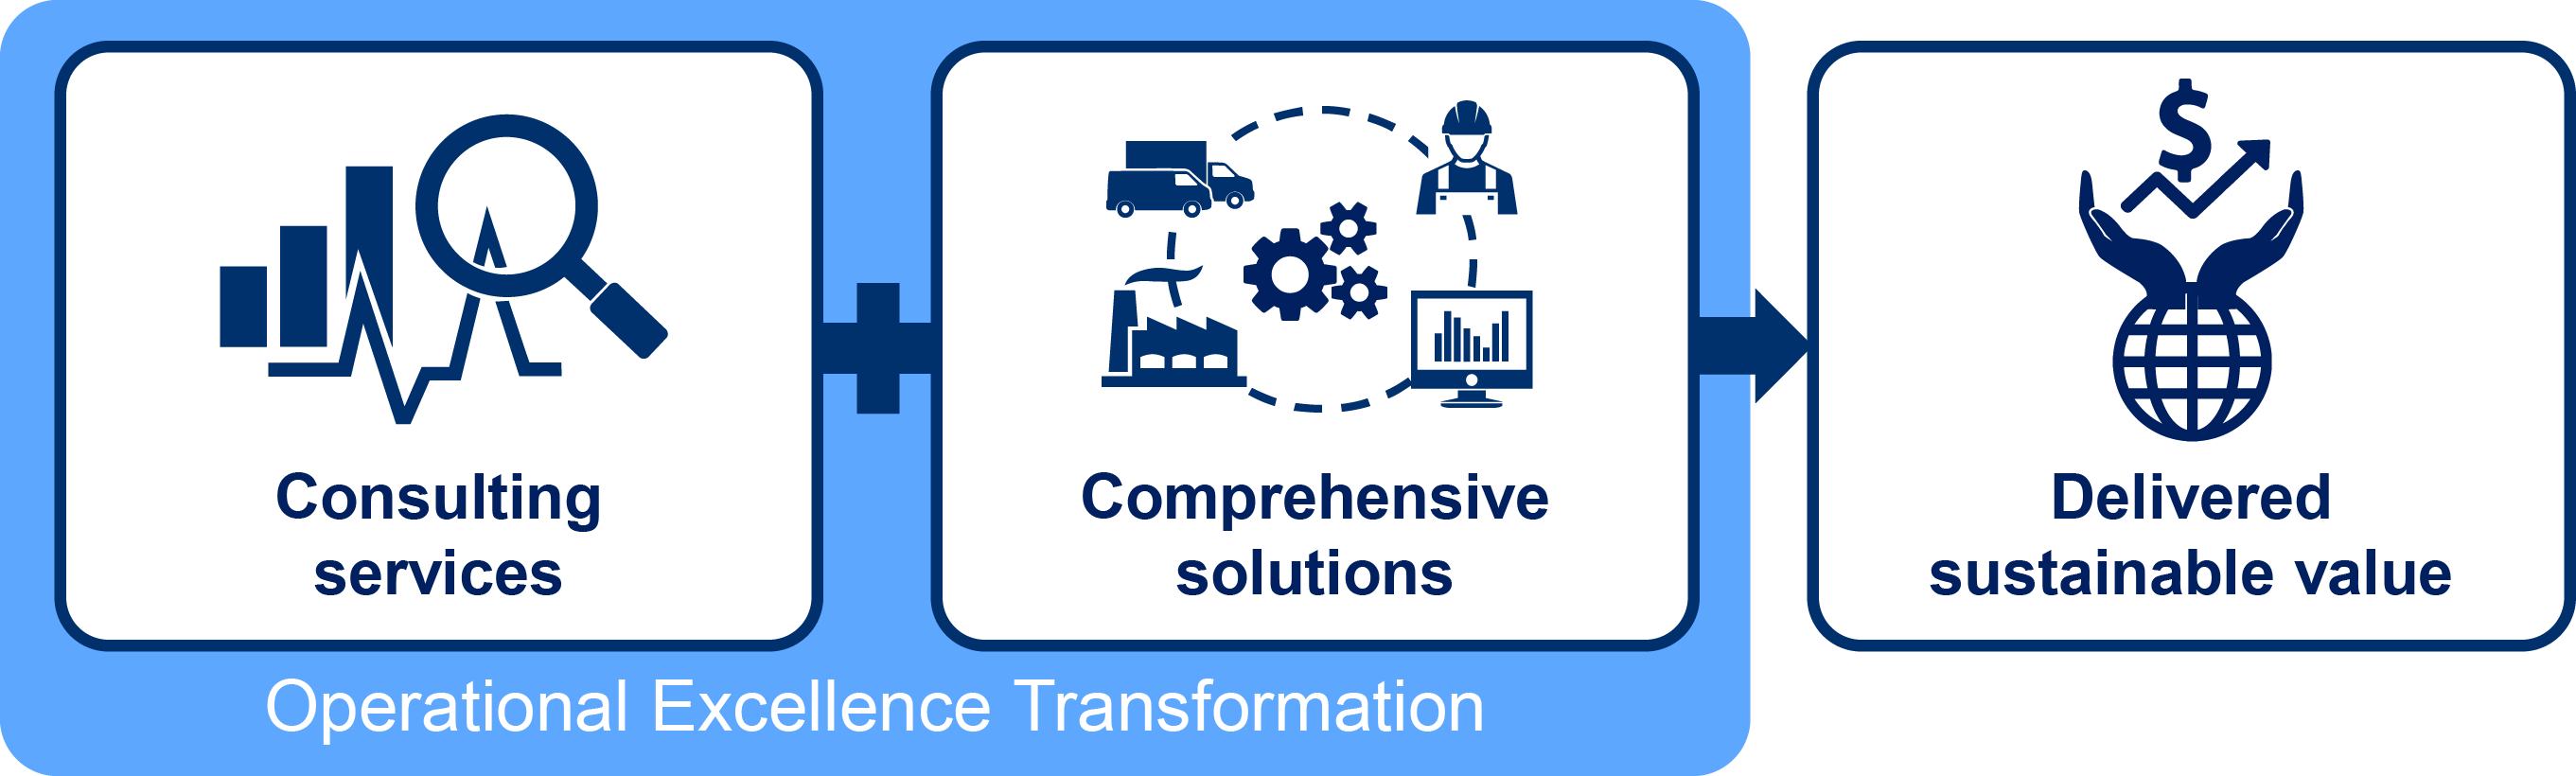 operational excellence transformation